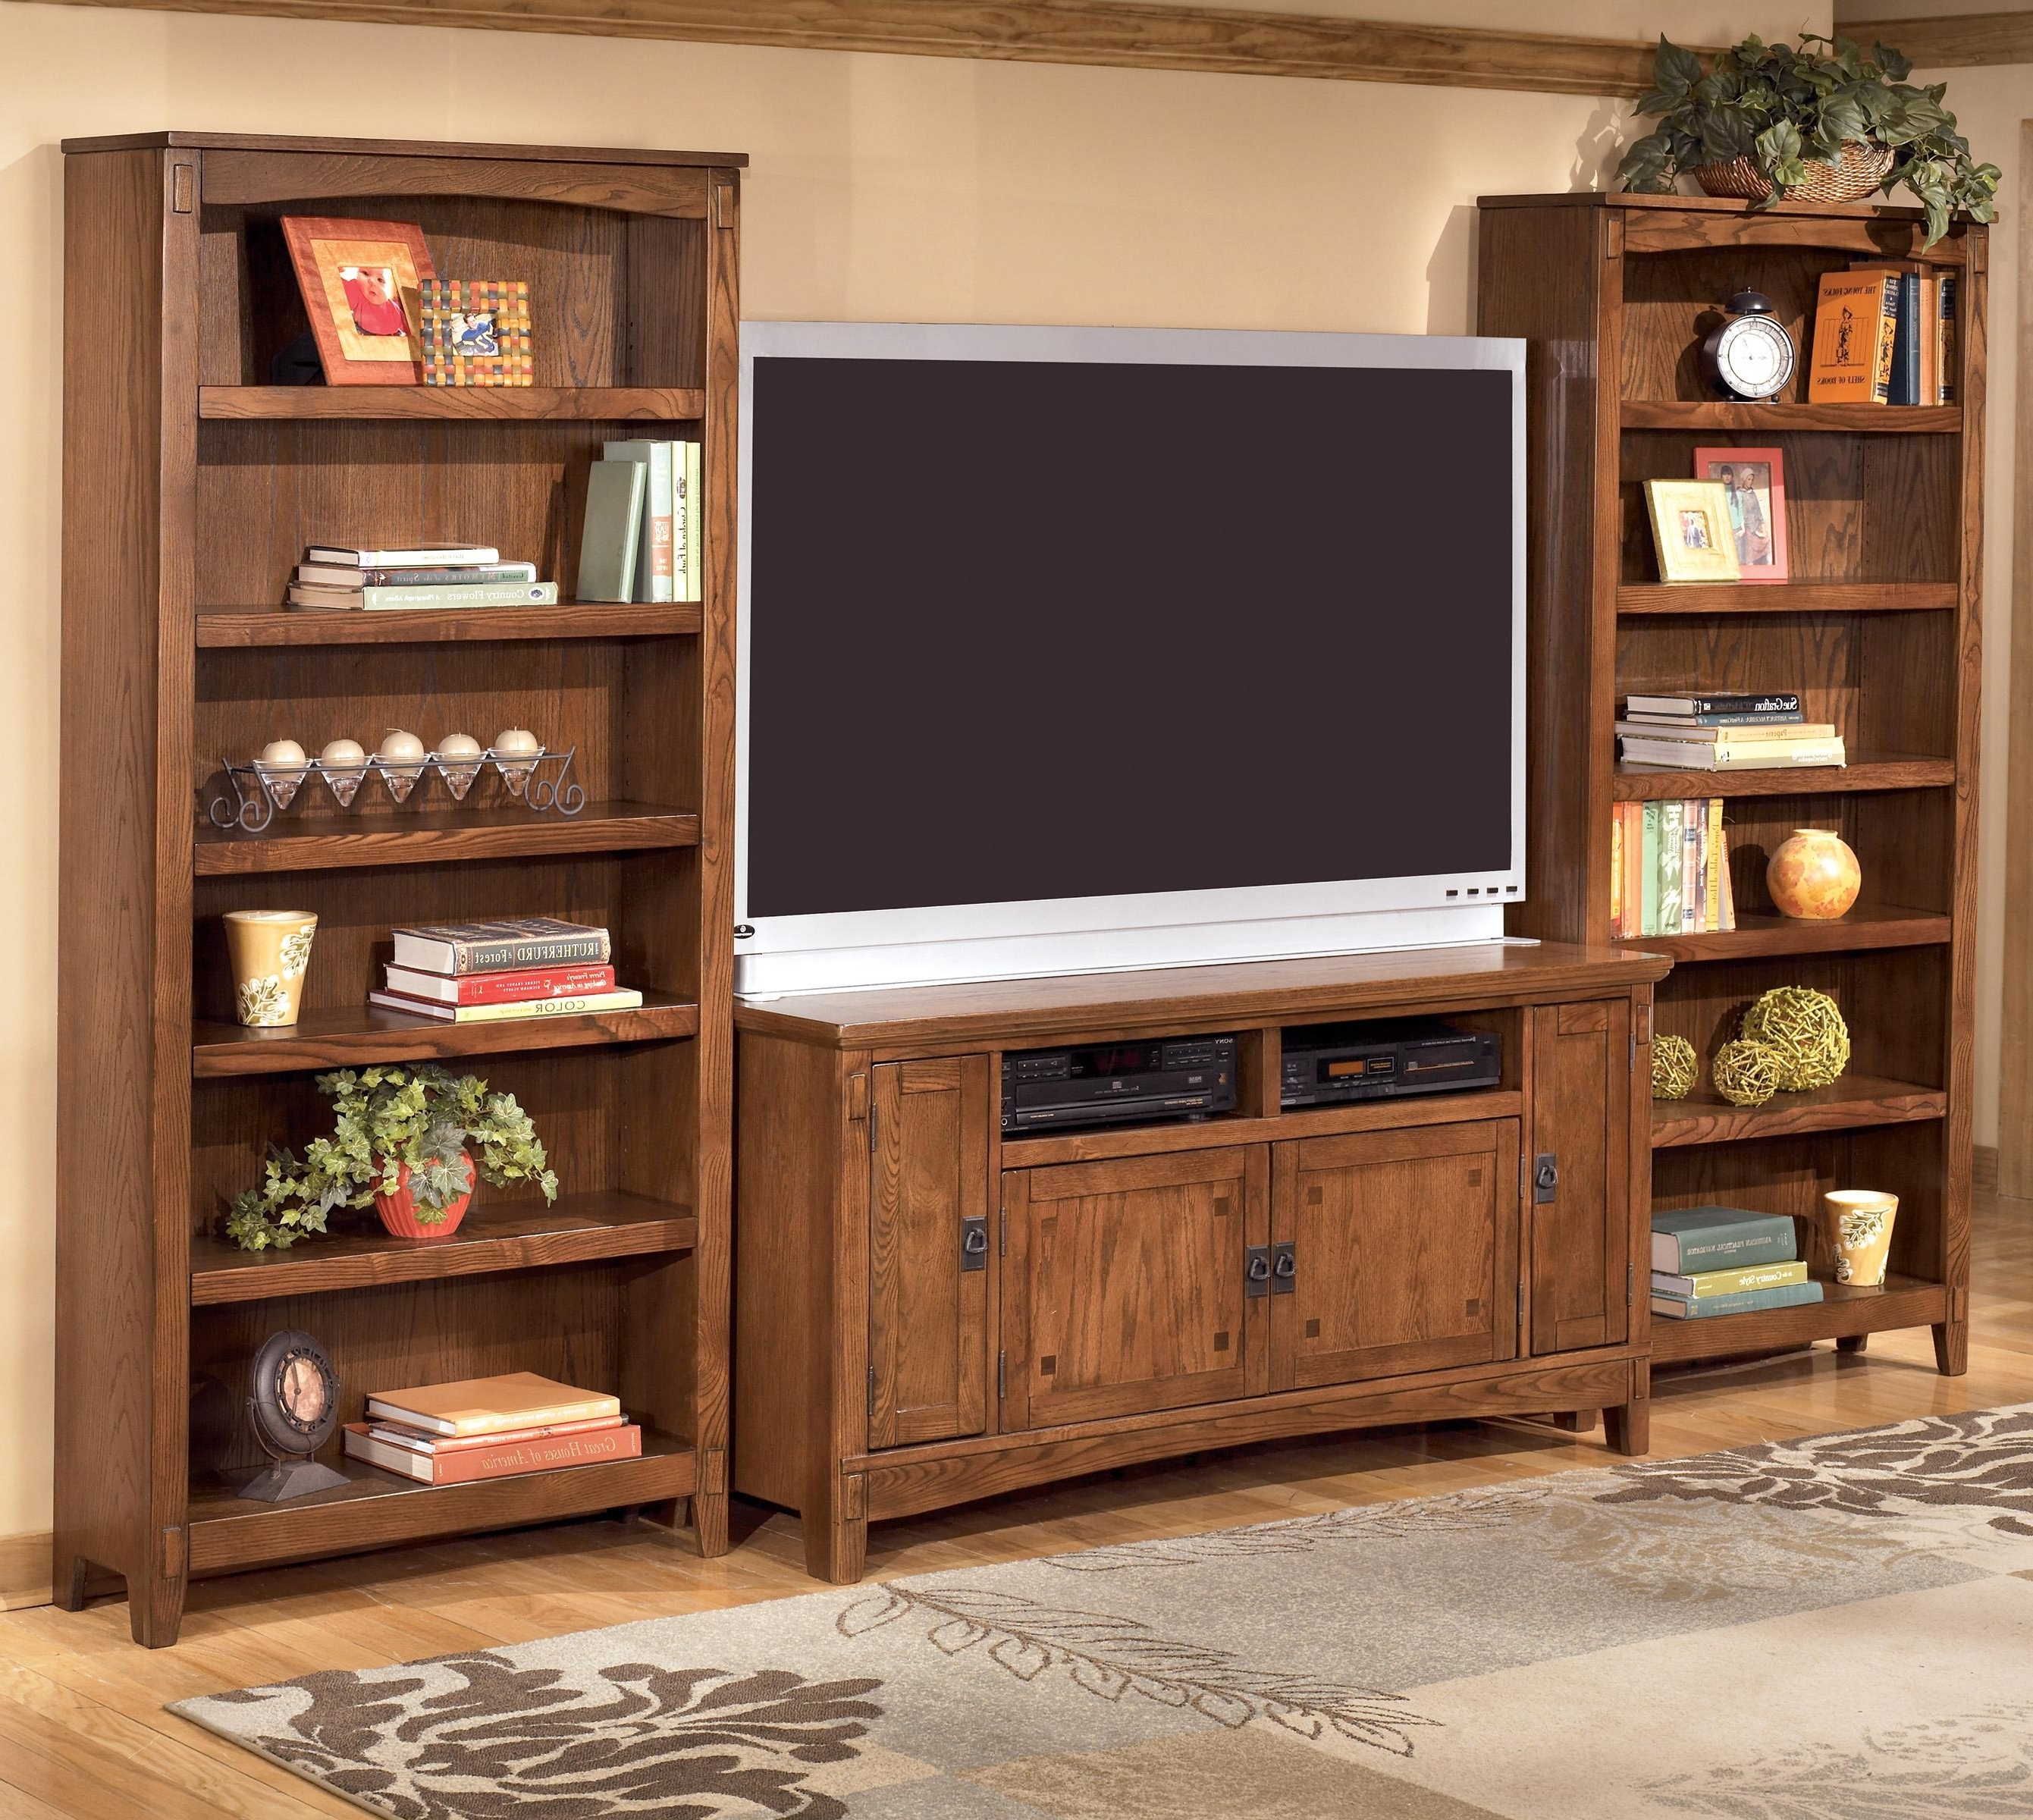 Best And Newest 60 Inch Tv Stand & 2 Large Bookcasesashley Furniture (View 2 of 15)